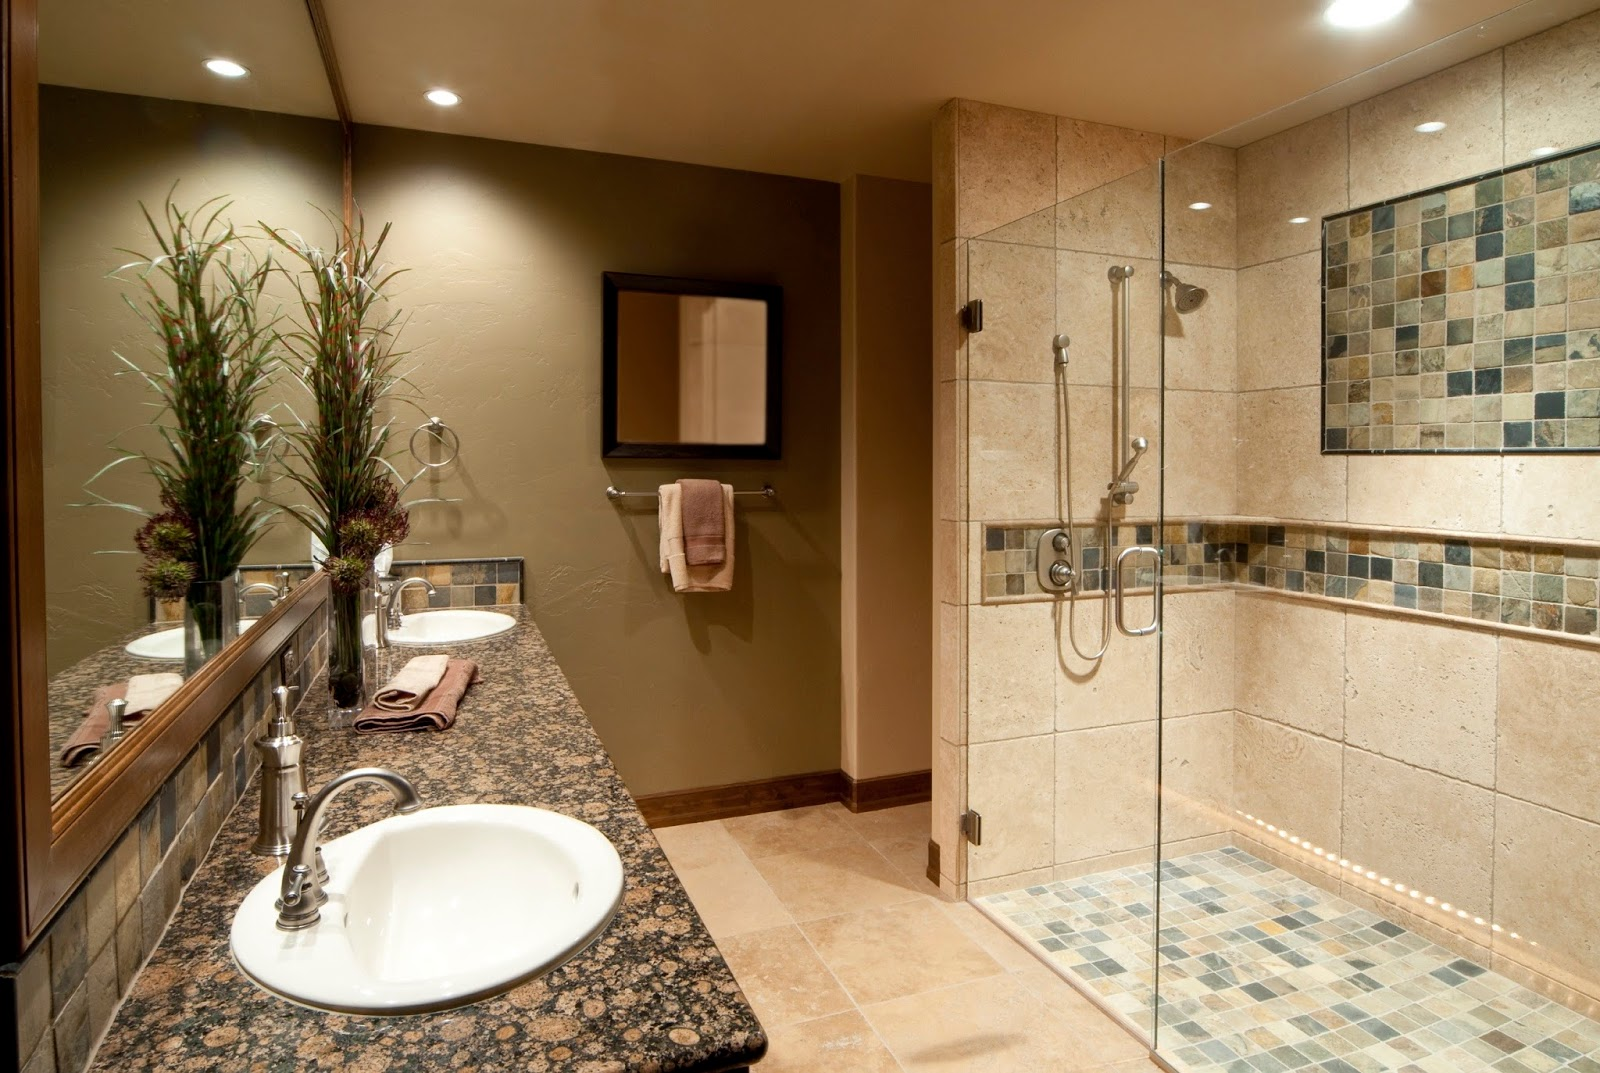 Lovely In the concept of the modern bathroom you can use a custom design and still elegant With adequate lighting and without bathup that will enhance the